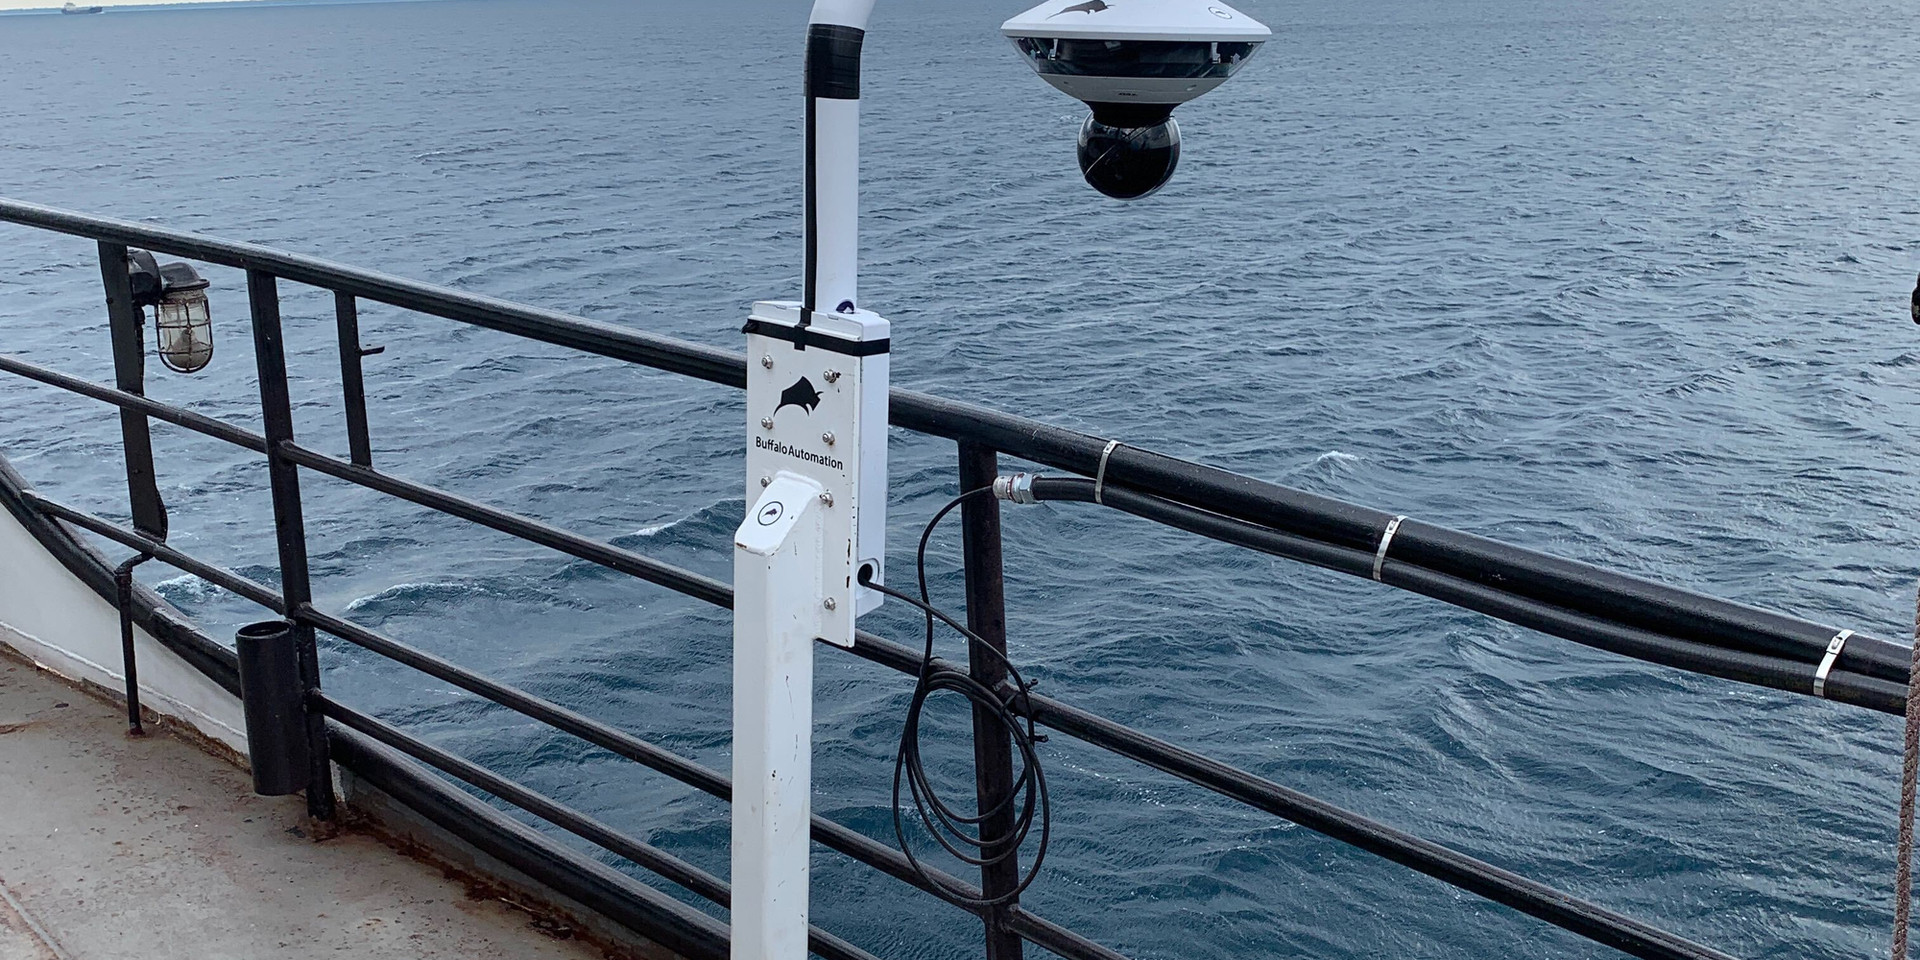 Auxiliary cameras